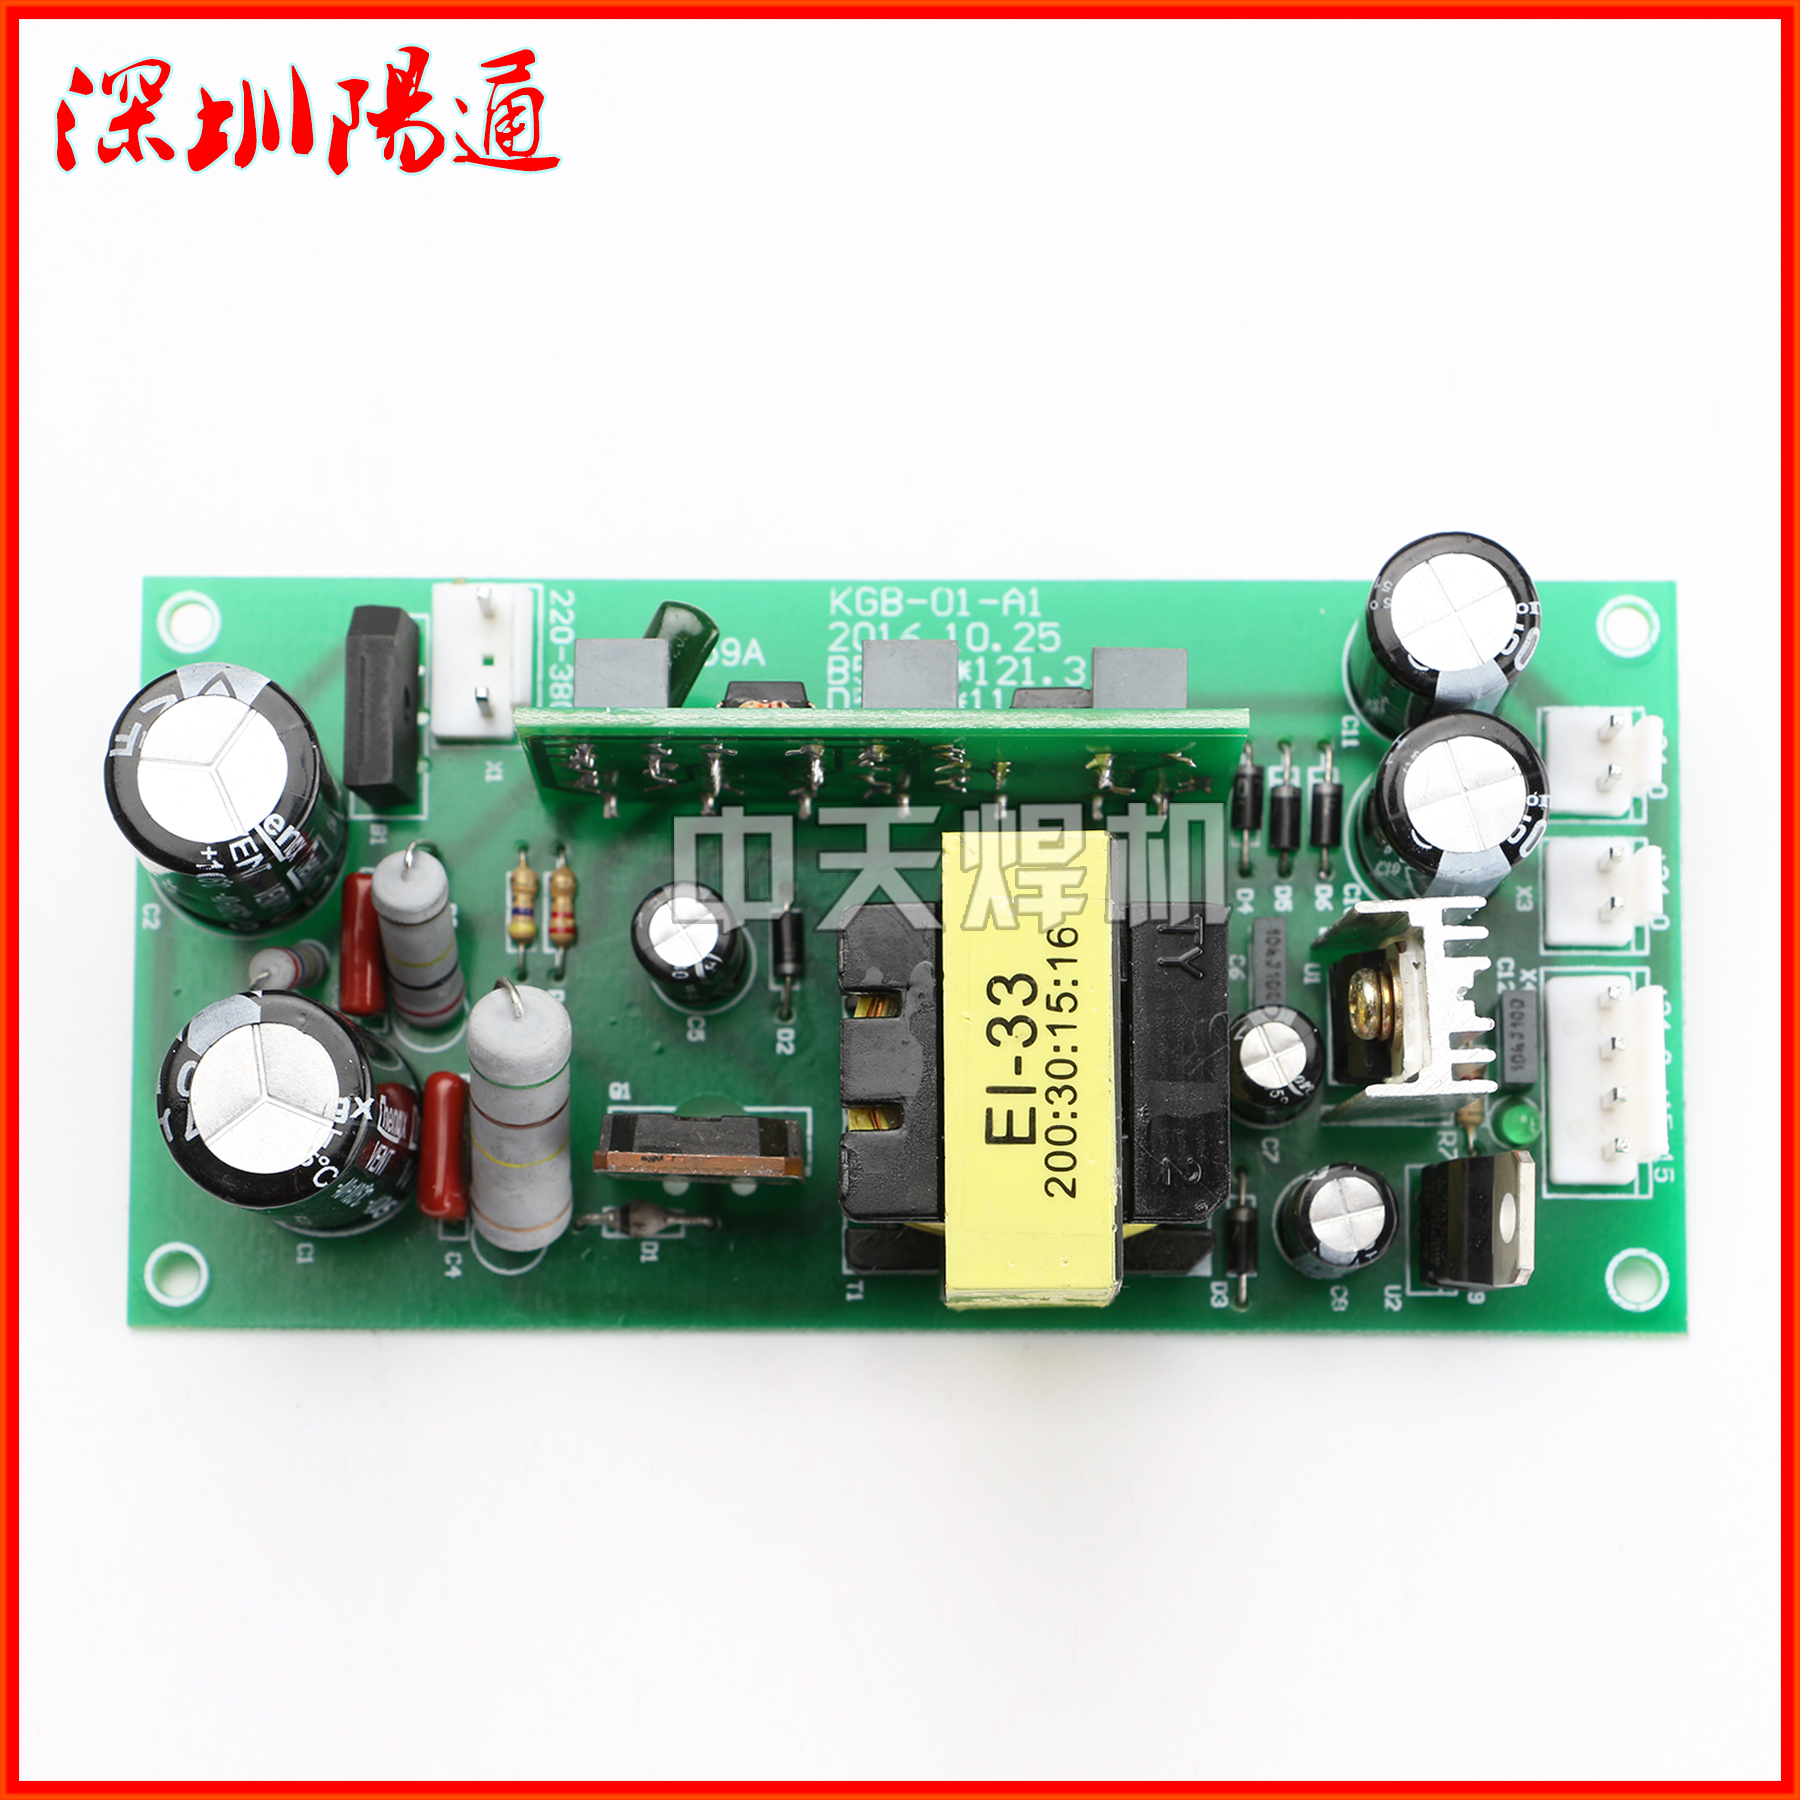 220/380v Dual Voltage Input Positive 24V Positive And Negative Double 15v KGB-01-A1 Switching Power Supply Board